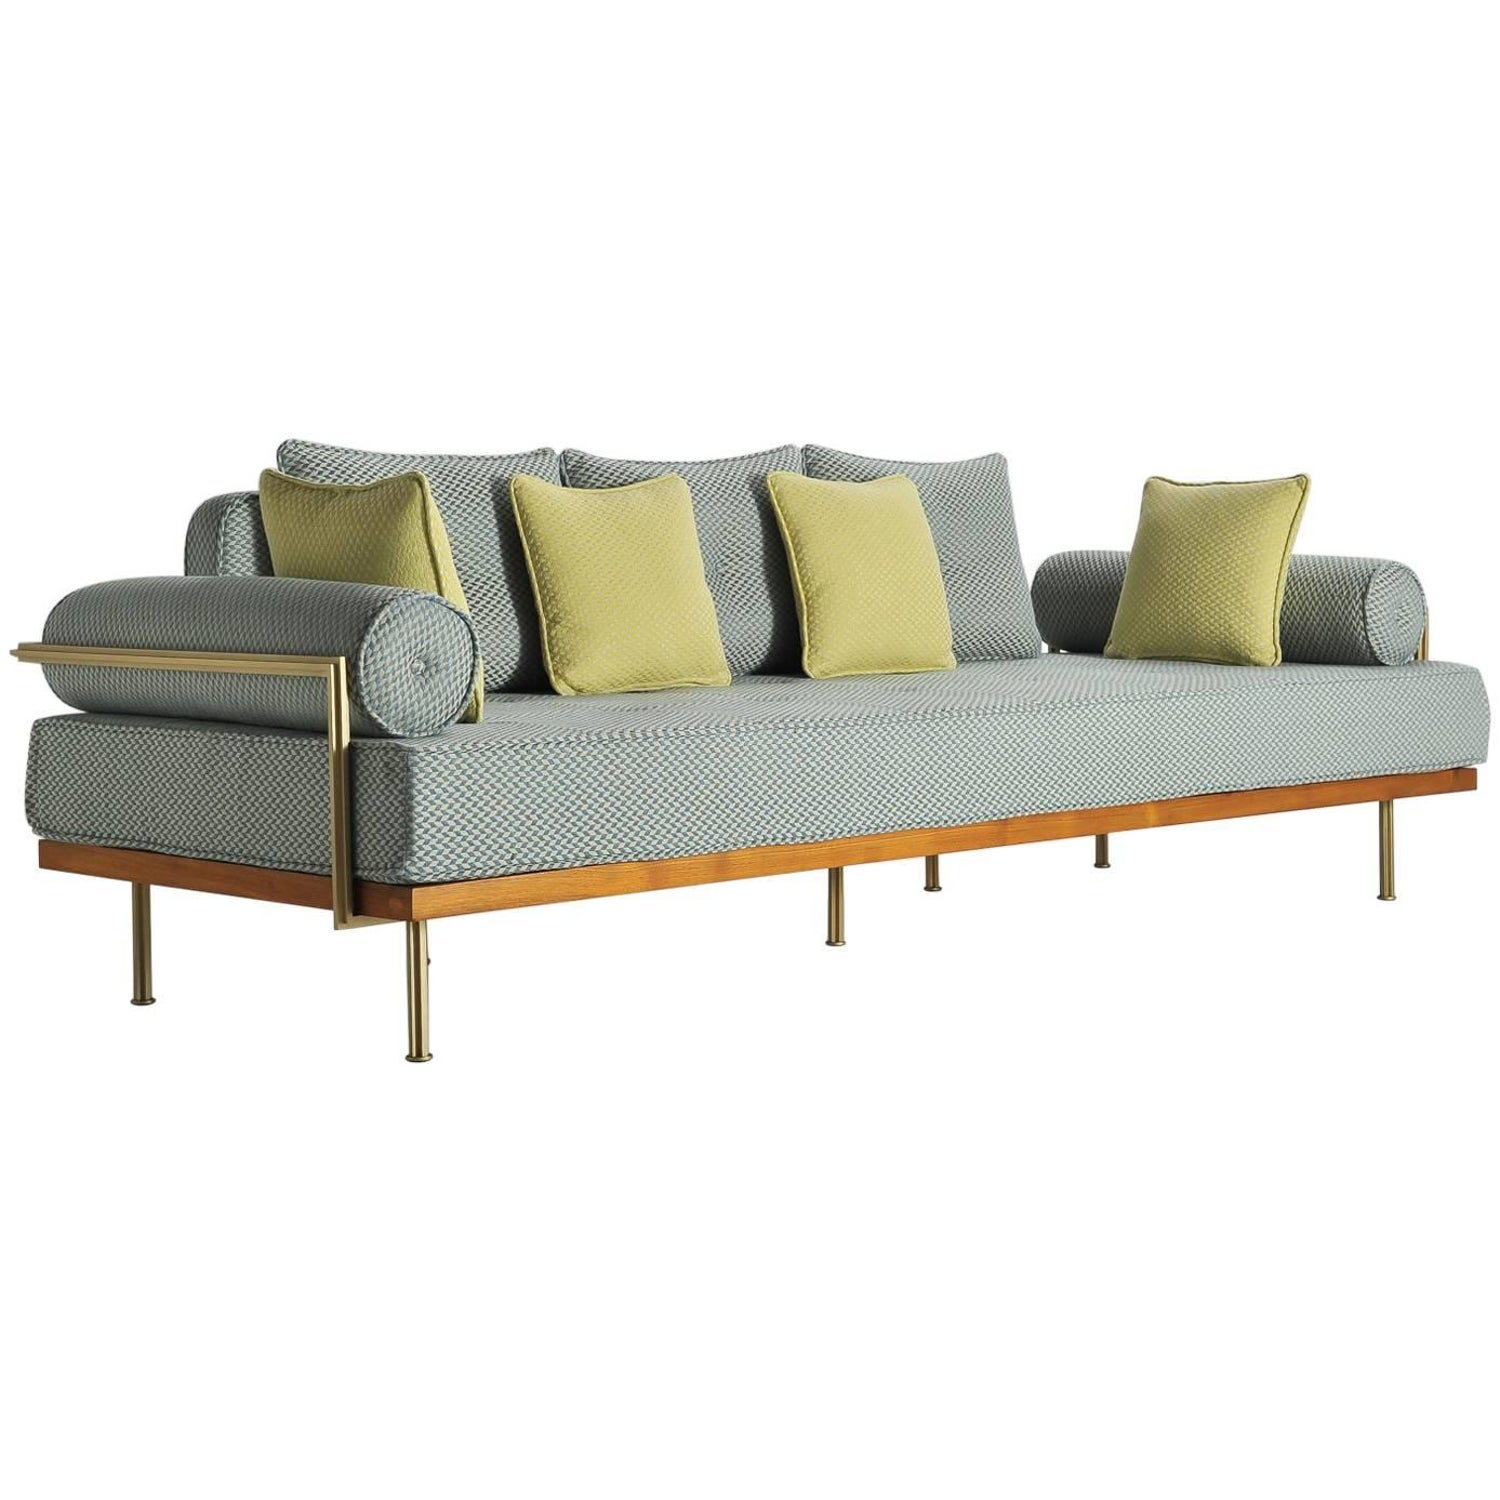 Mid century modern style sofa reclaimed hardwood brass frames for sale at 1stdibs